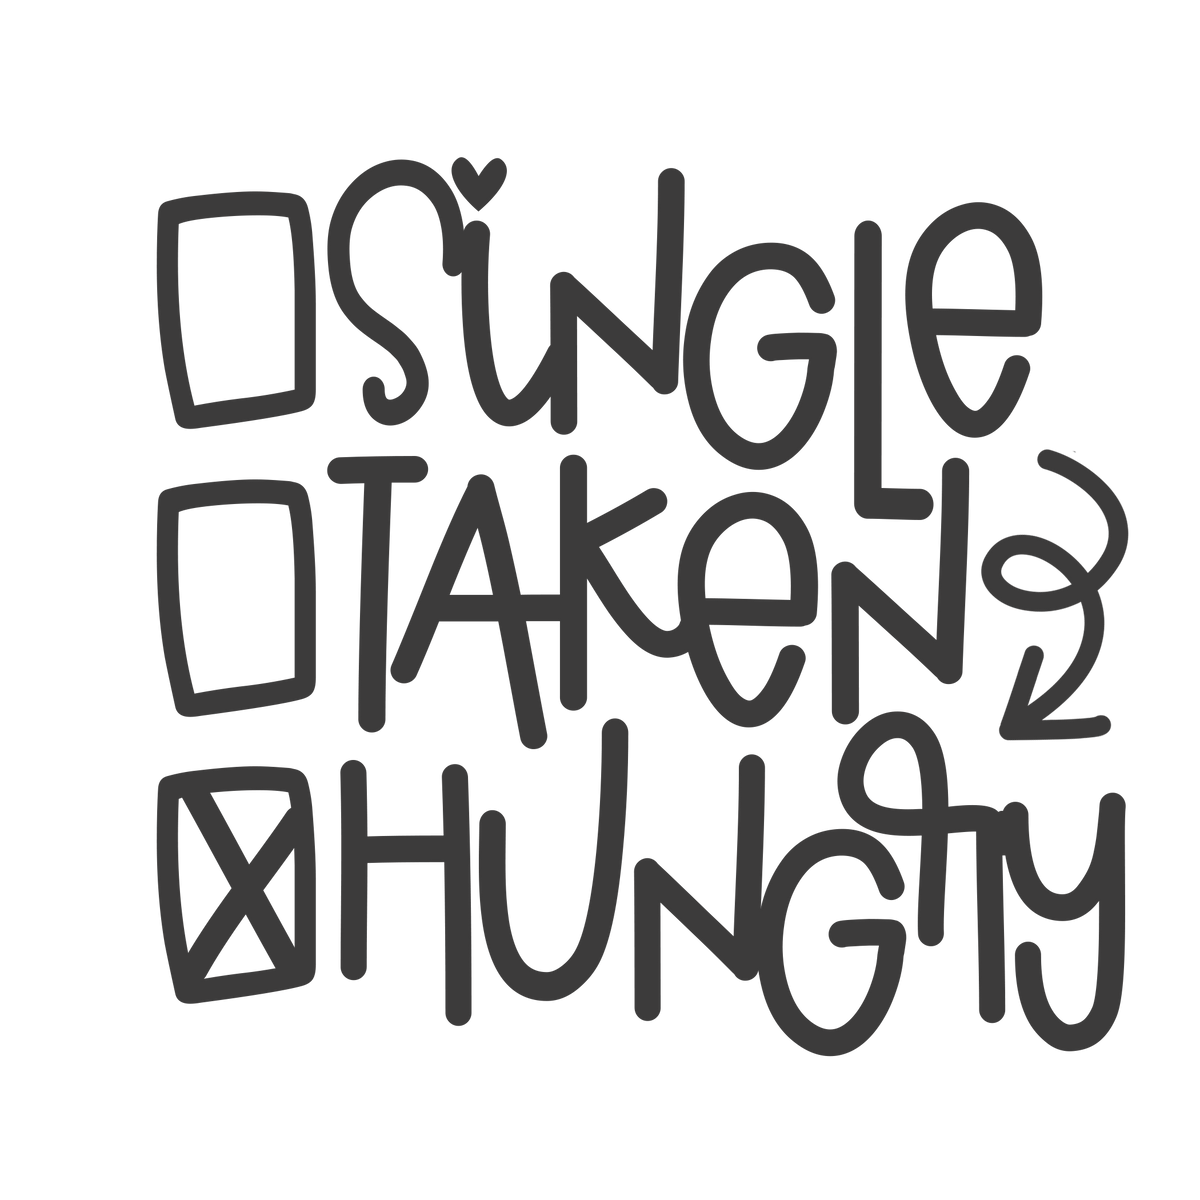 single taken or hungry